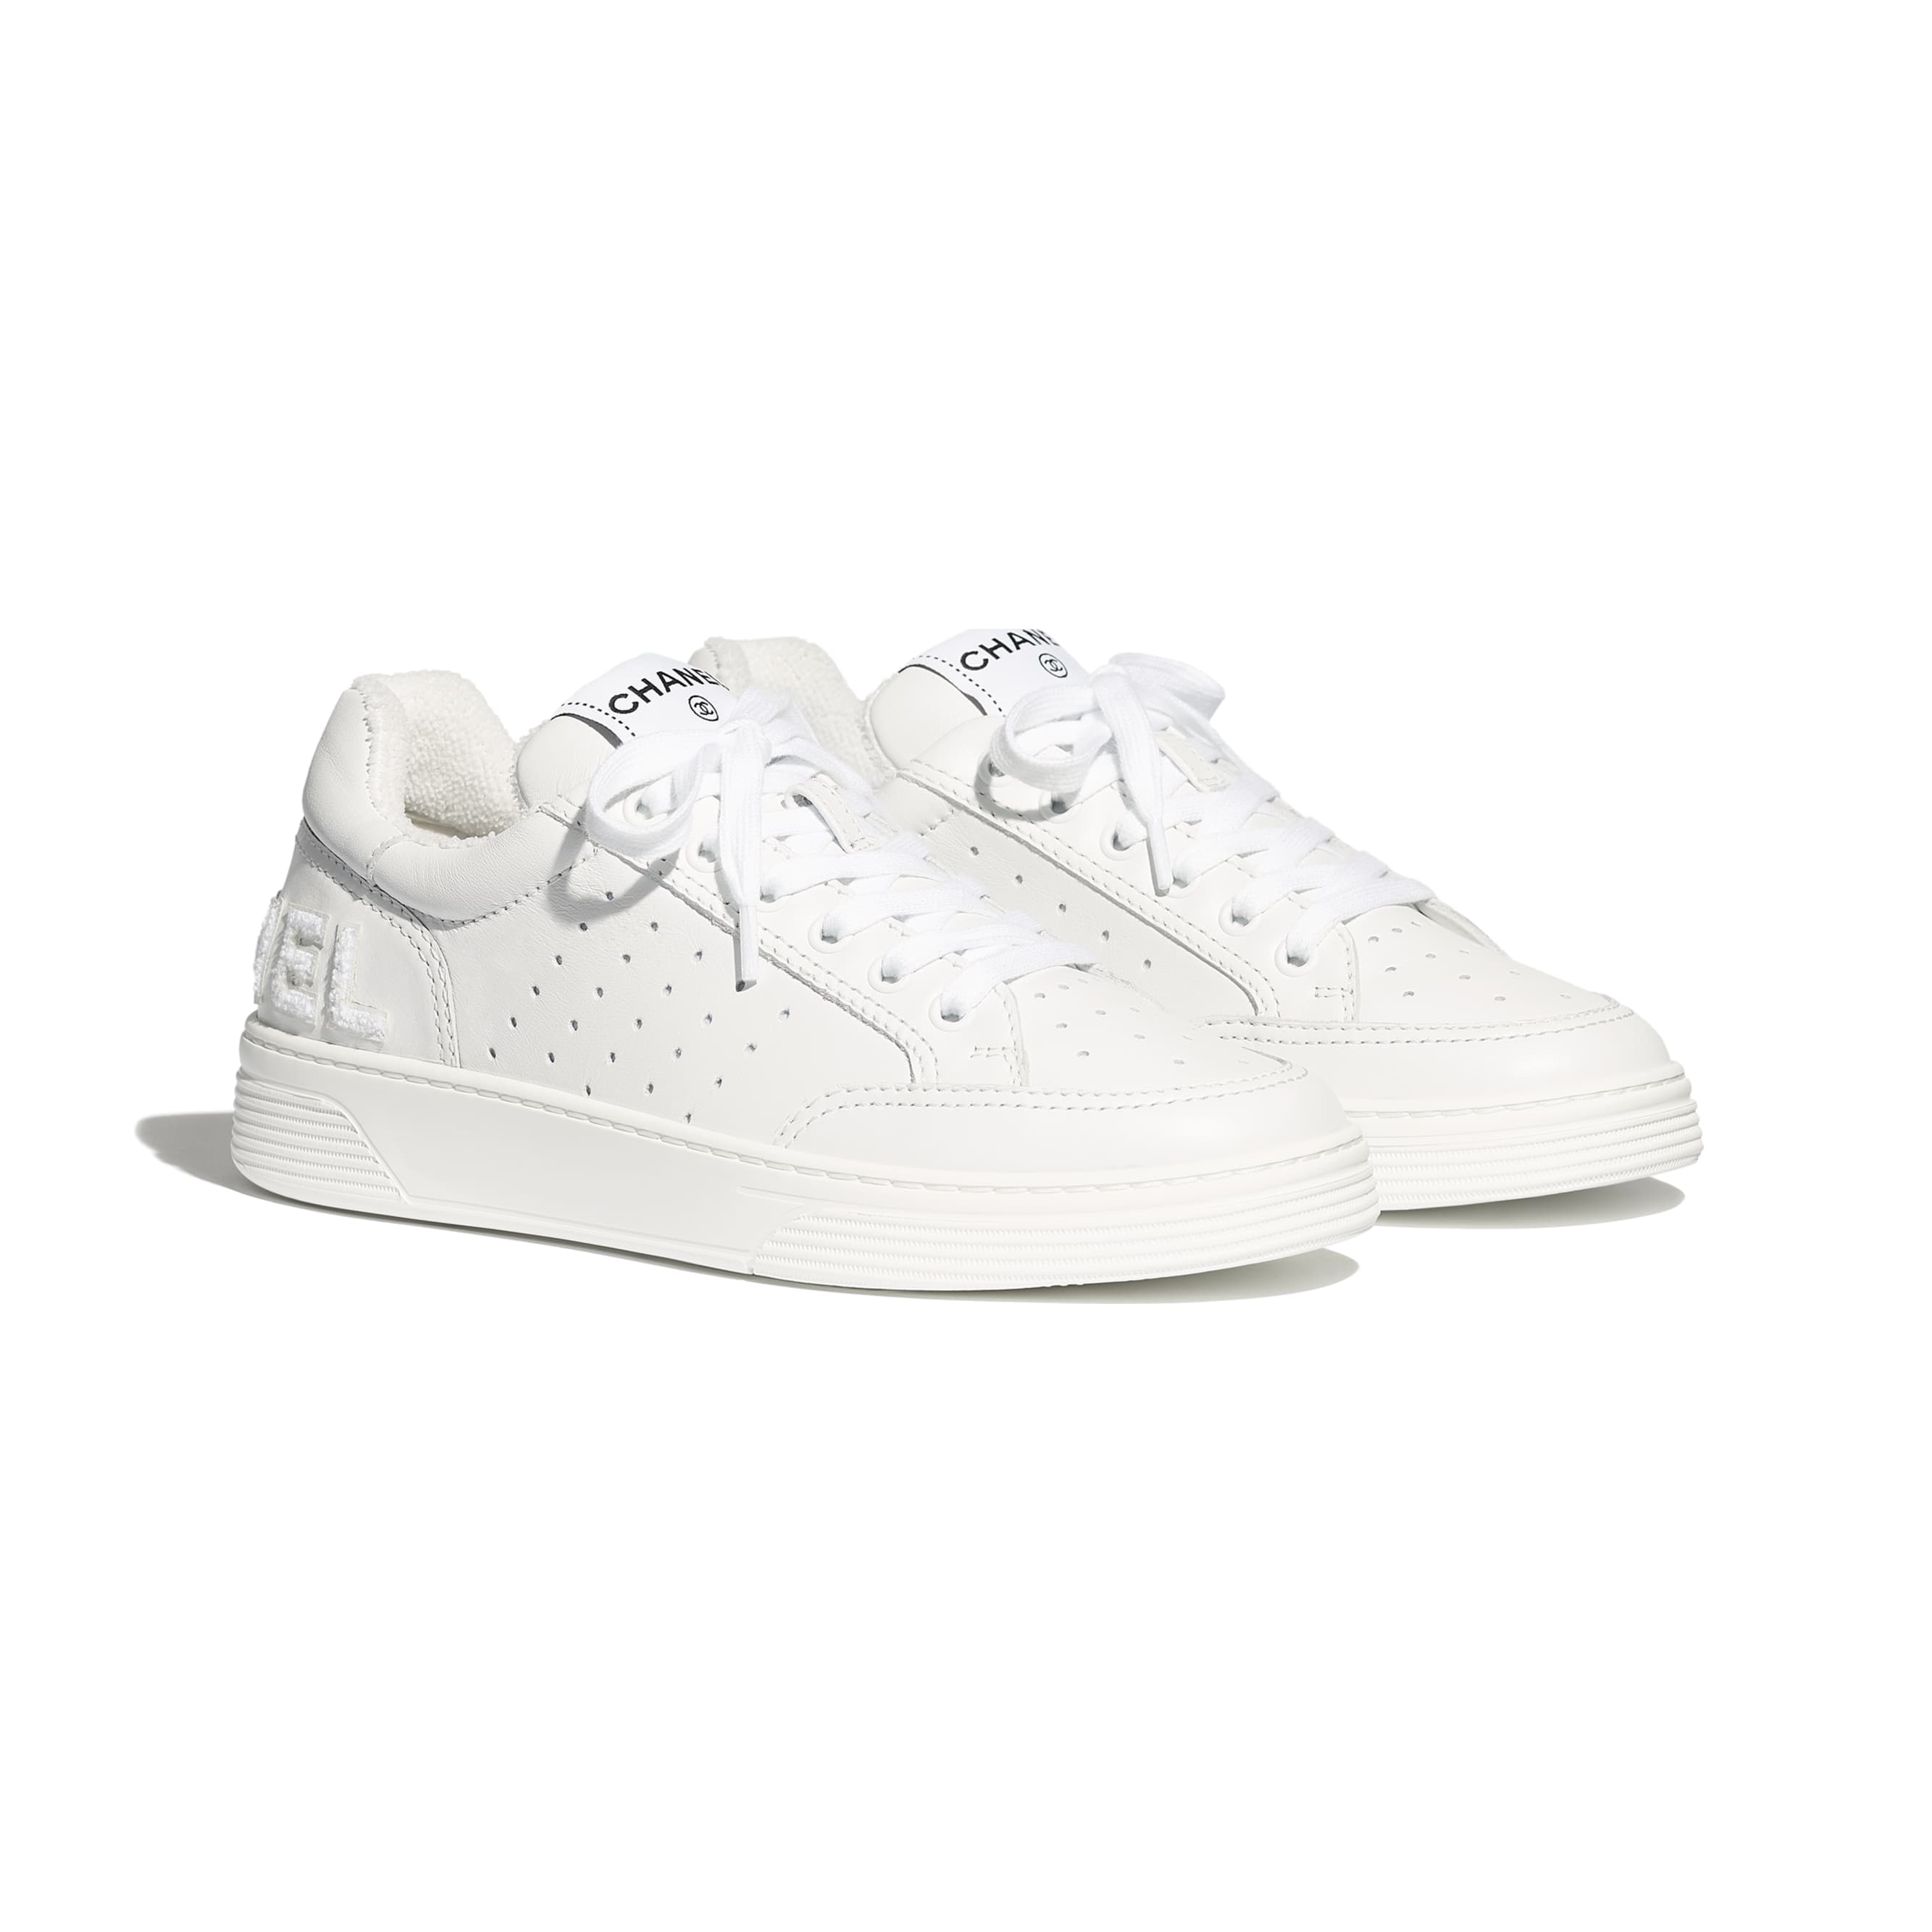 Trainers - White - Calfskin - Alternative view - see standard sized version